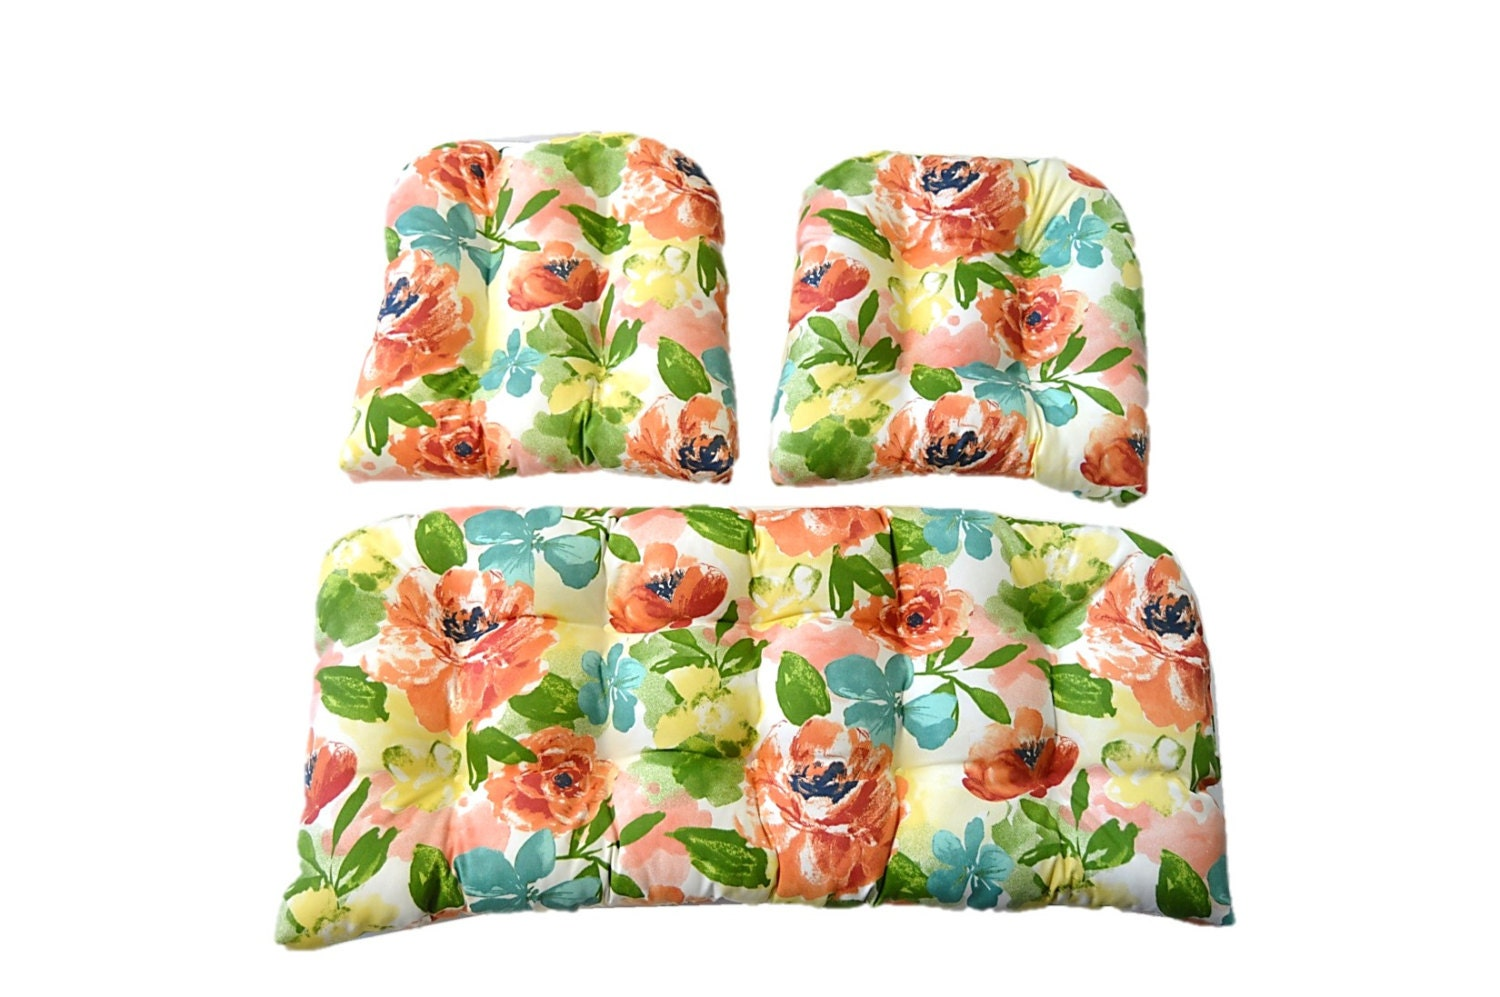 3 Piece In / Outdoor Wicker Cushion Set Coral Teal Green